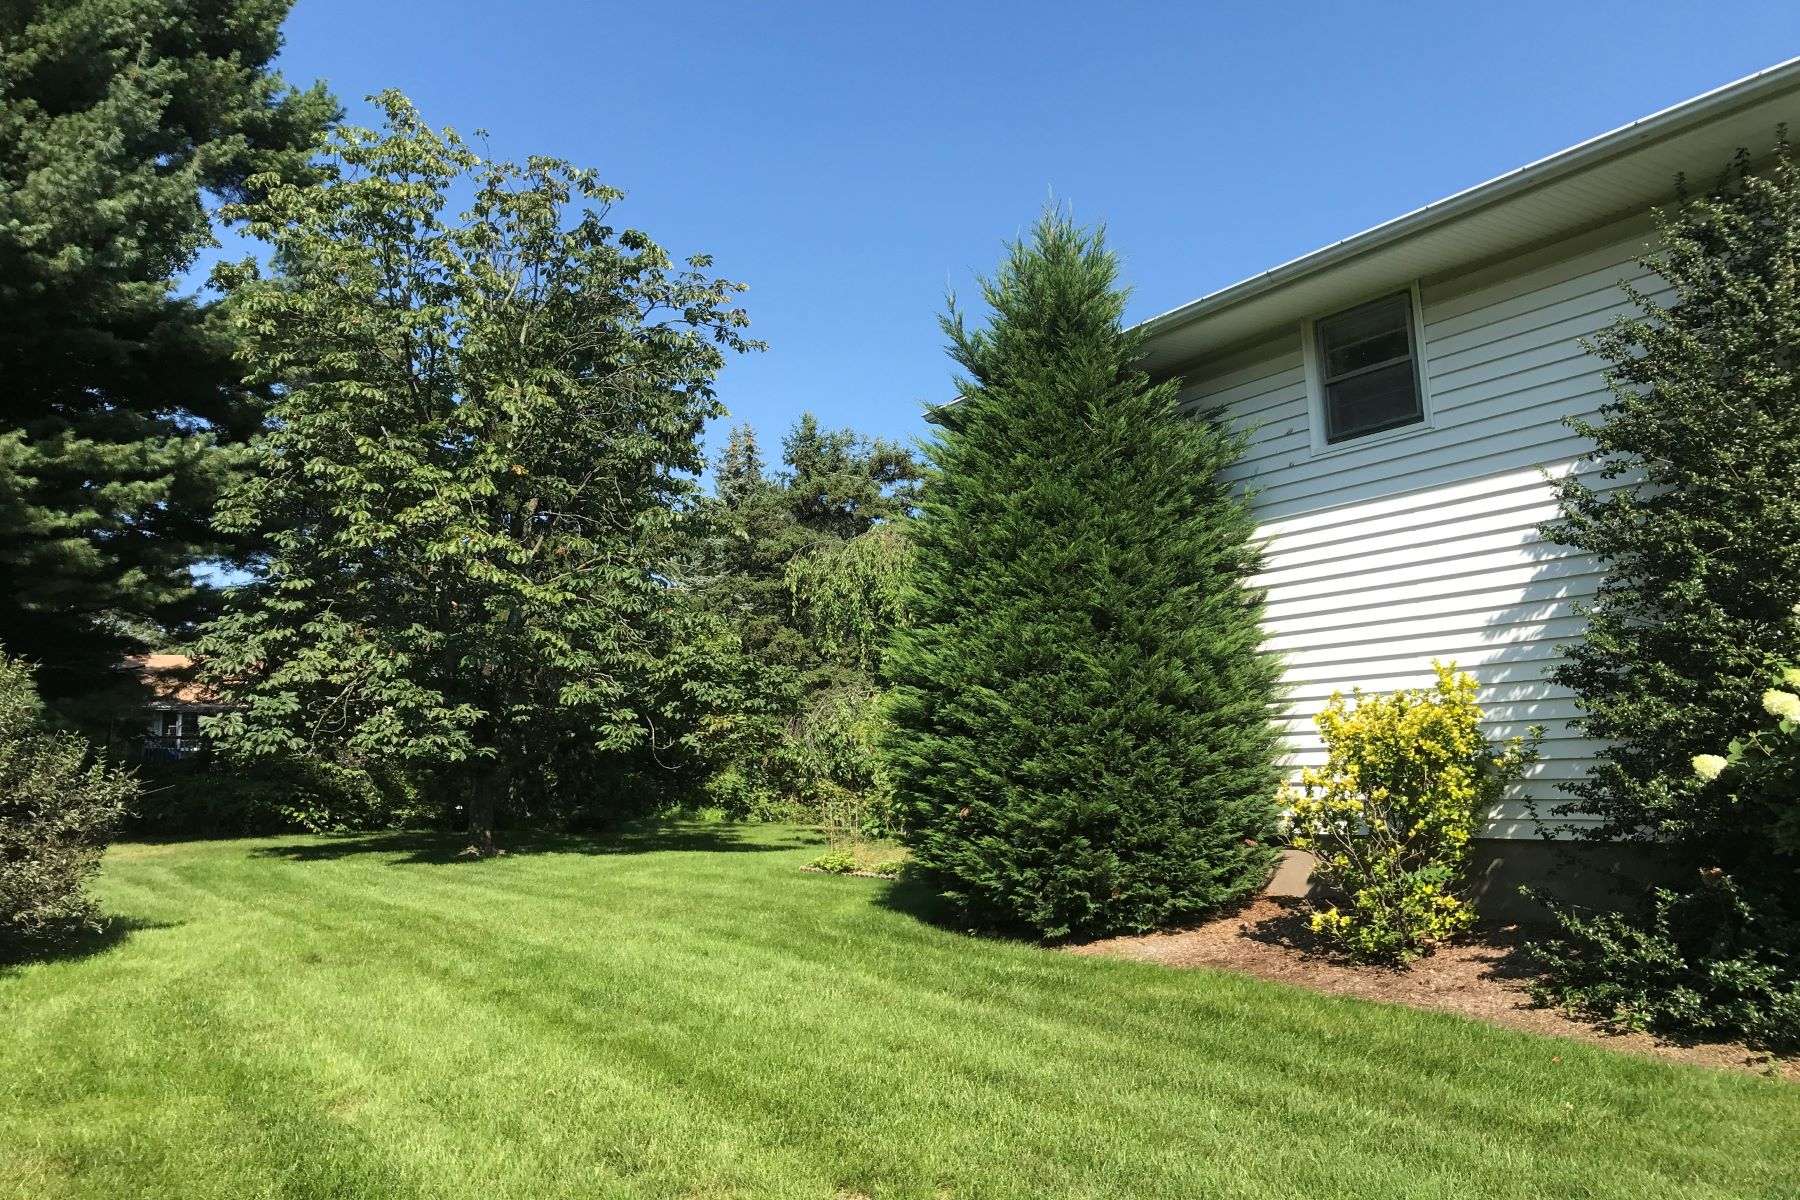 Single Family Home for Sale at Private Sugar Maple Split Level 61 5th St Midland Park, New Jersey 07432 United States